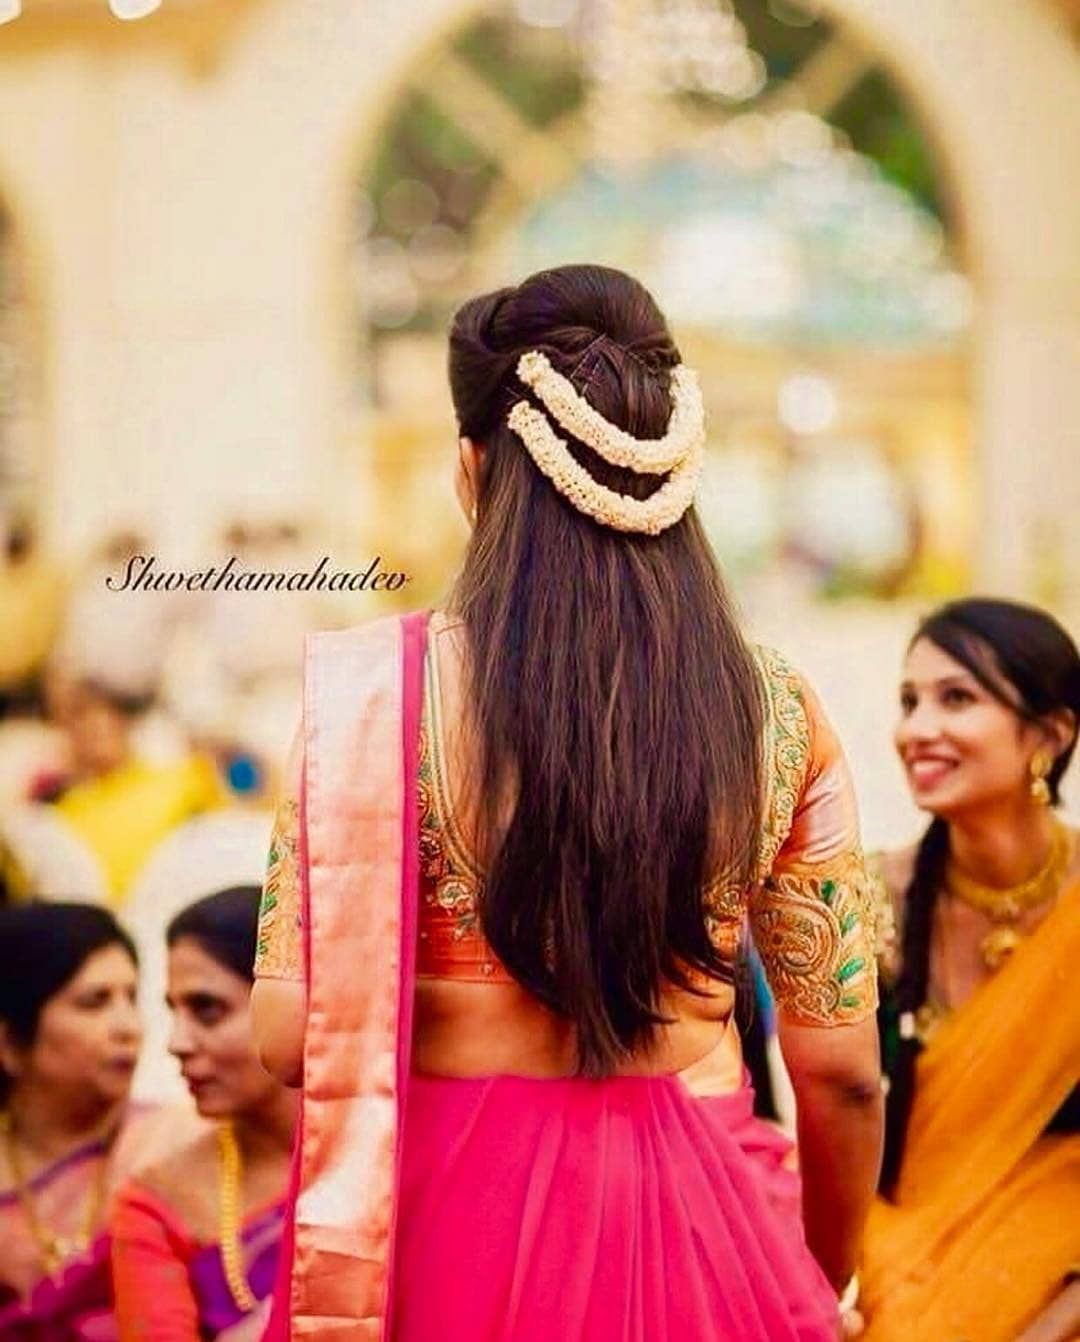 She Is Creating Style Statement In This Beautiful Pink Saree And The Simple Hair Style Is Beautiful Hair Styles Indian Bridal Hairstyles Indian Bride Hairstyle